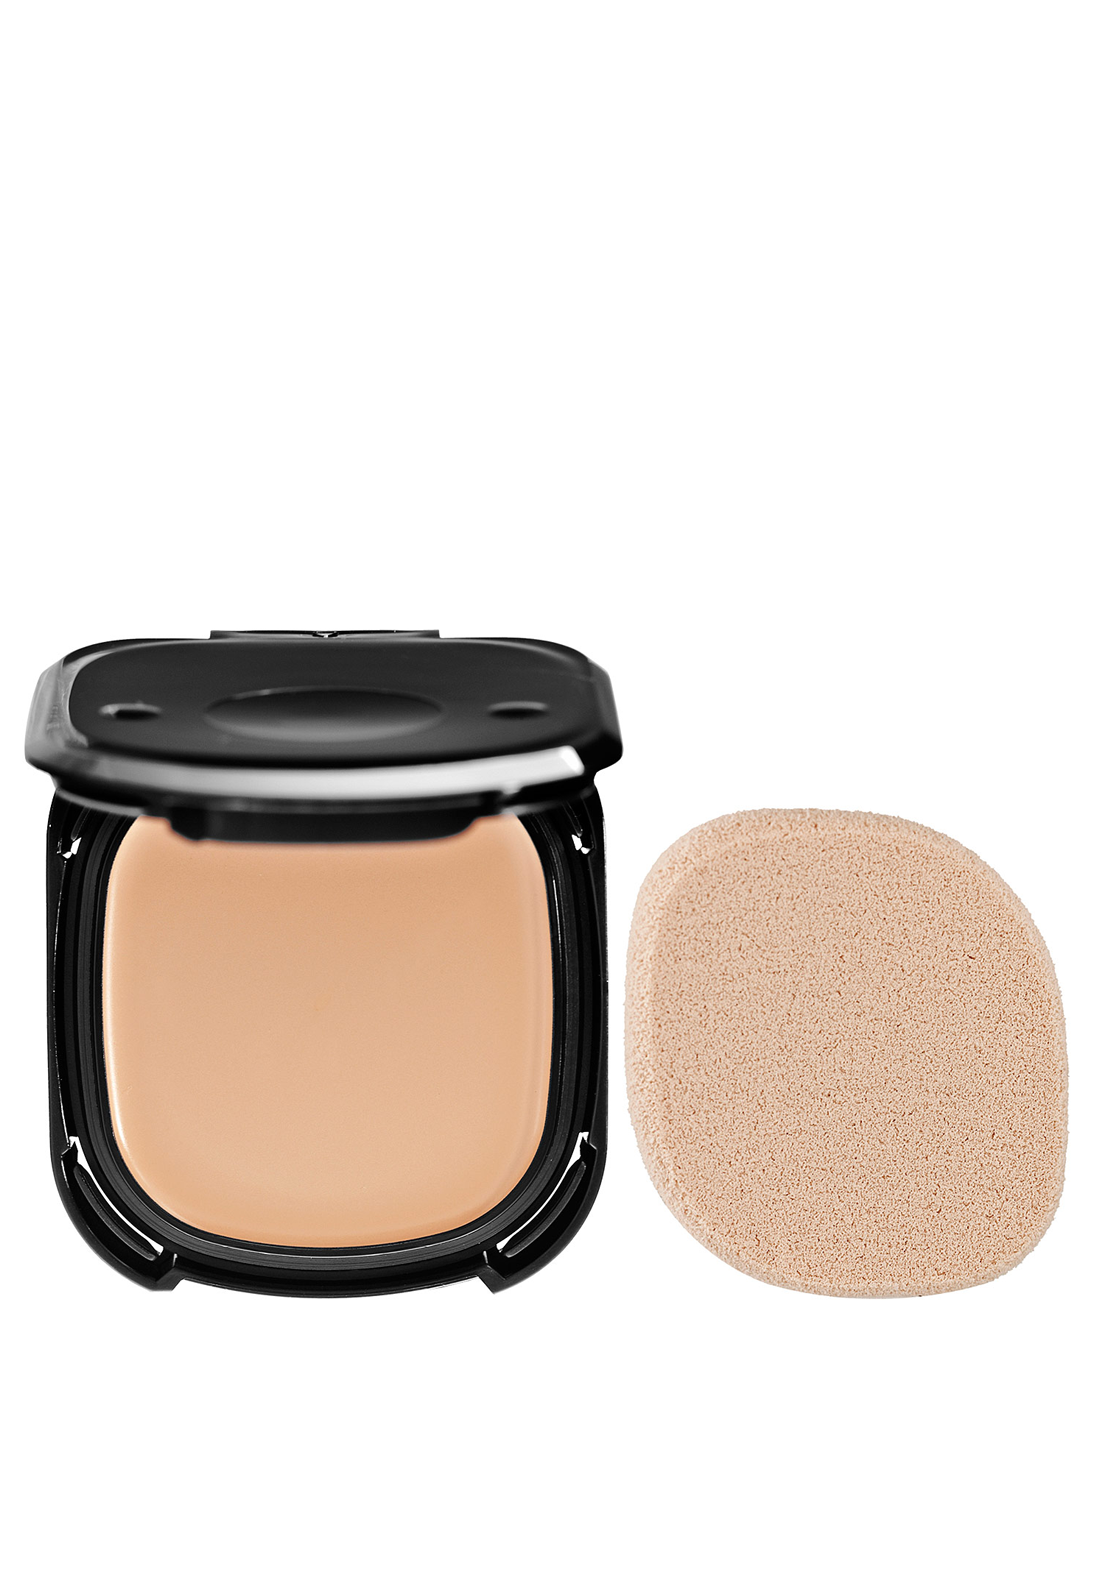 Shiseido Advanced Hydro-Liquid Compact (Refill) with SPF10, Natural Fair Ivory I40